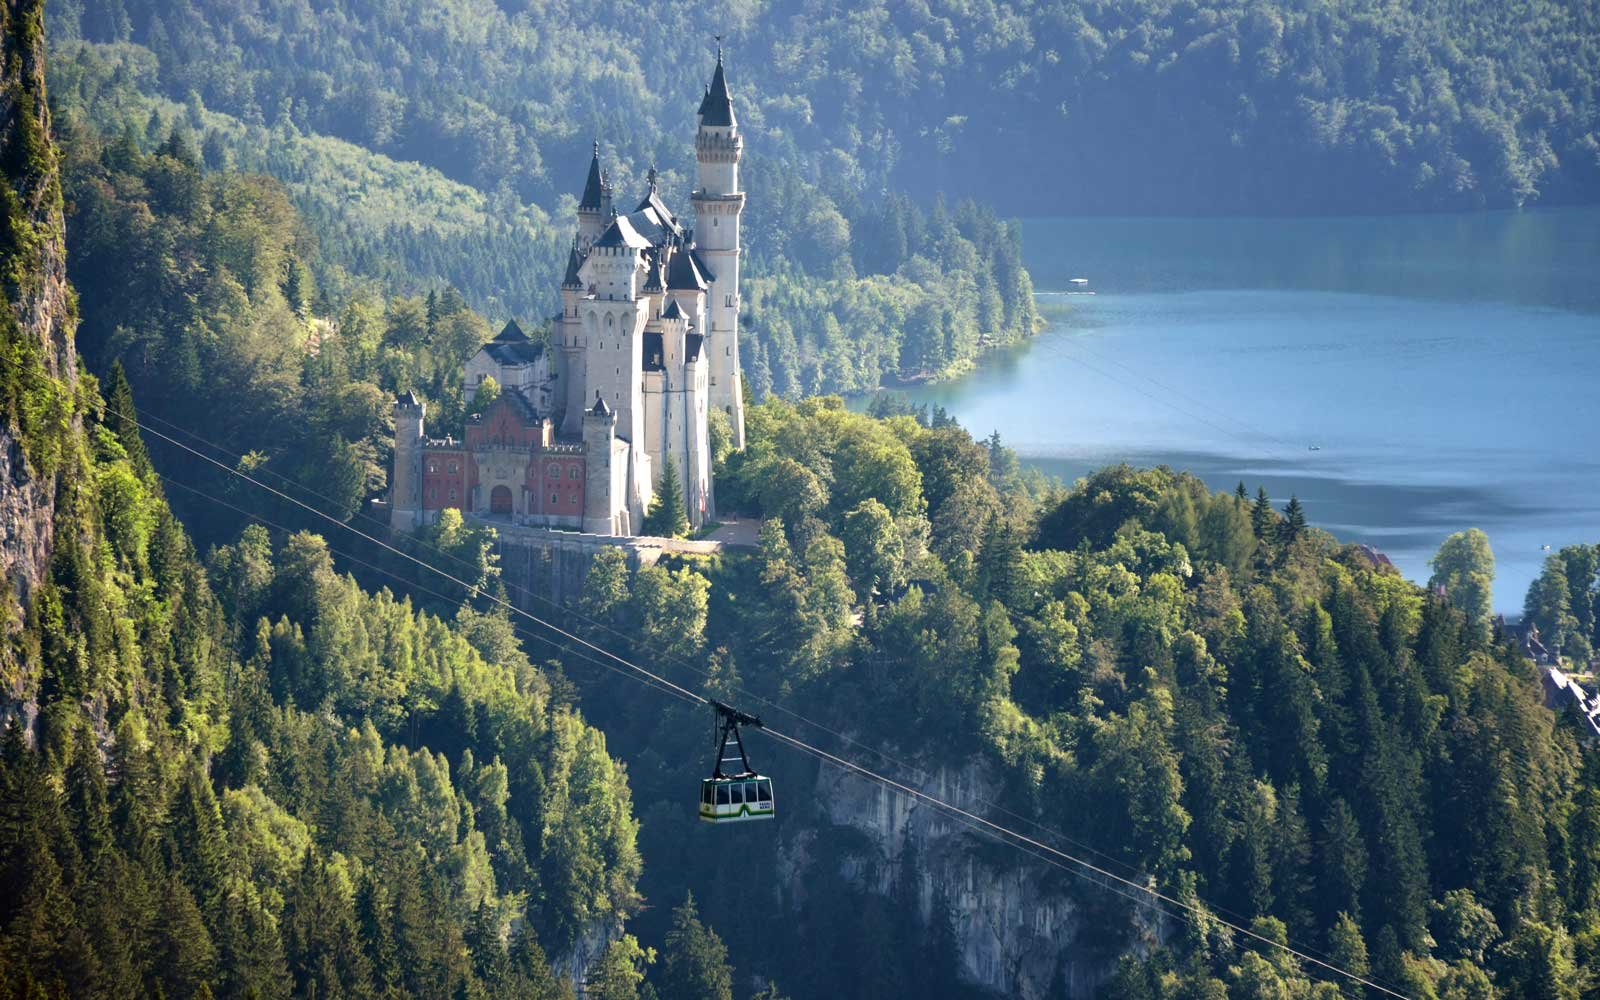 Important Things to Know About Neuschwanstein Castle